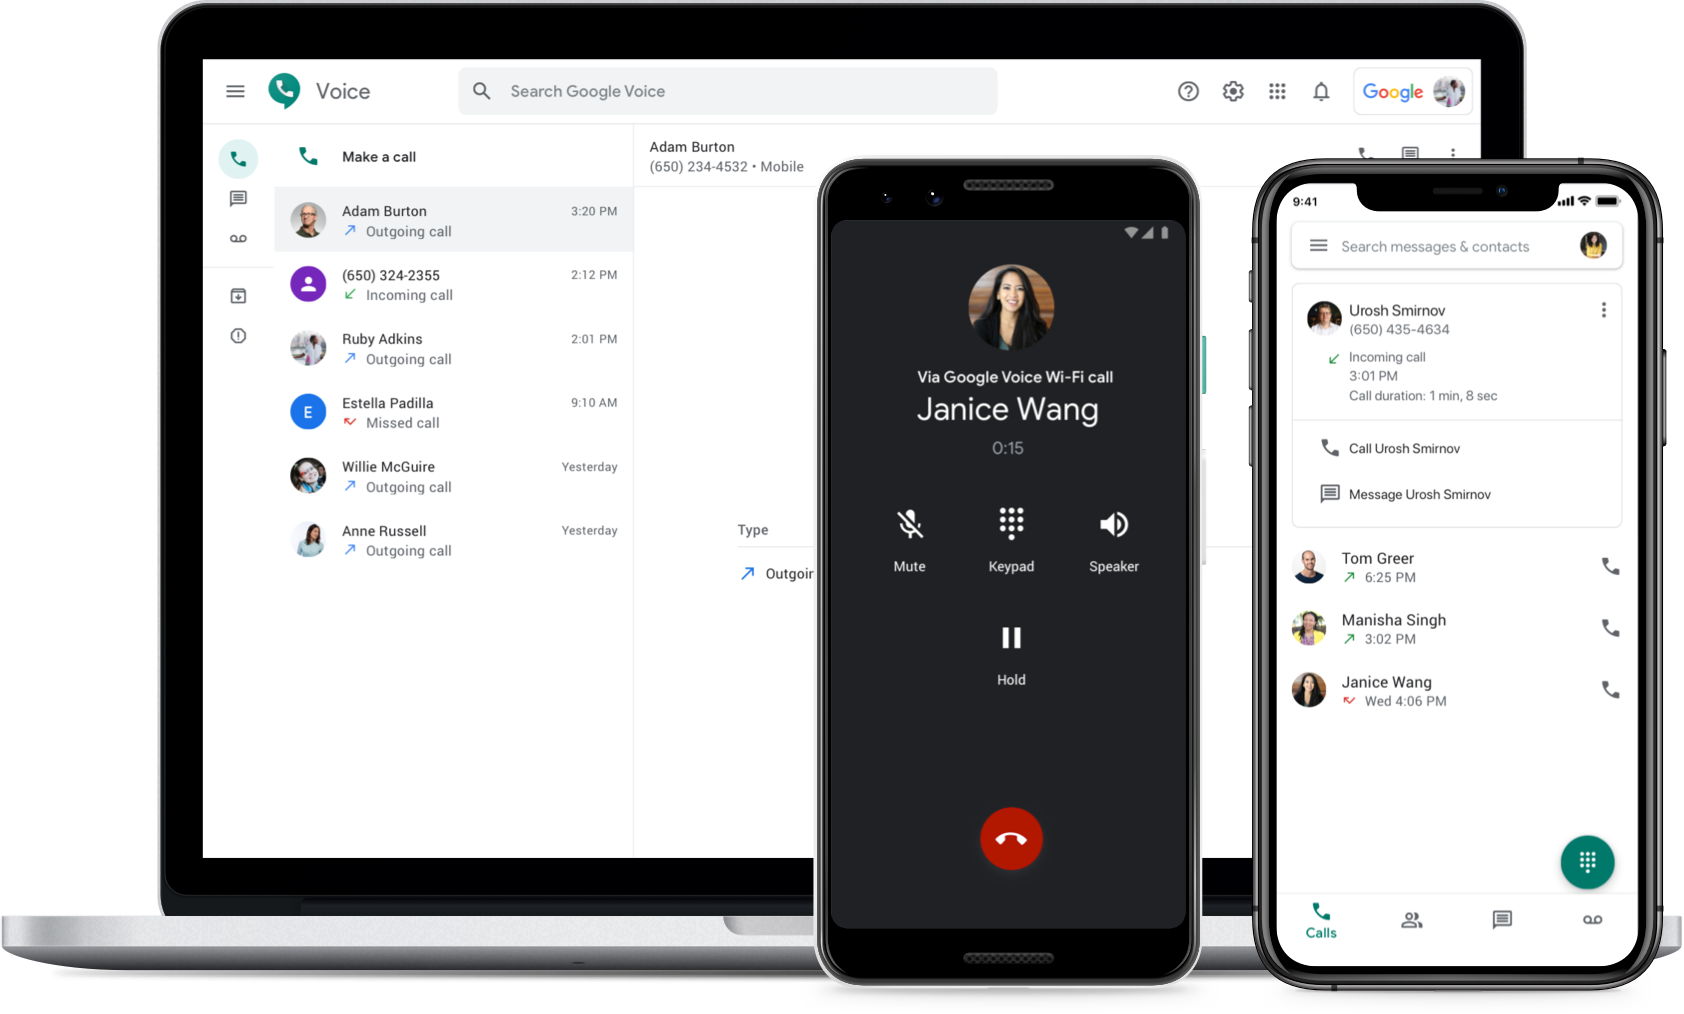 Image showing Google Voice on a laptop, Android phone and iPhone browser.